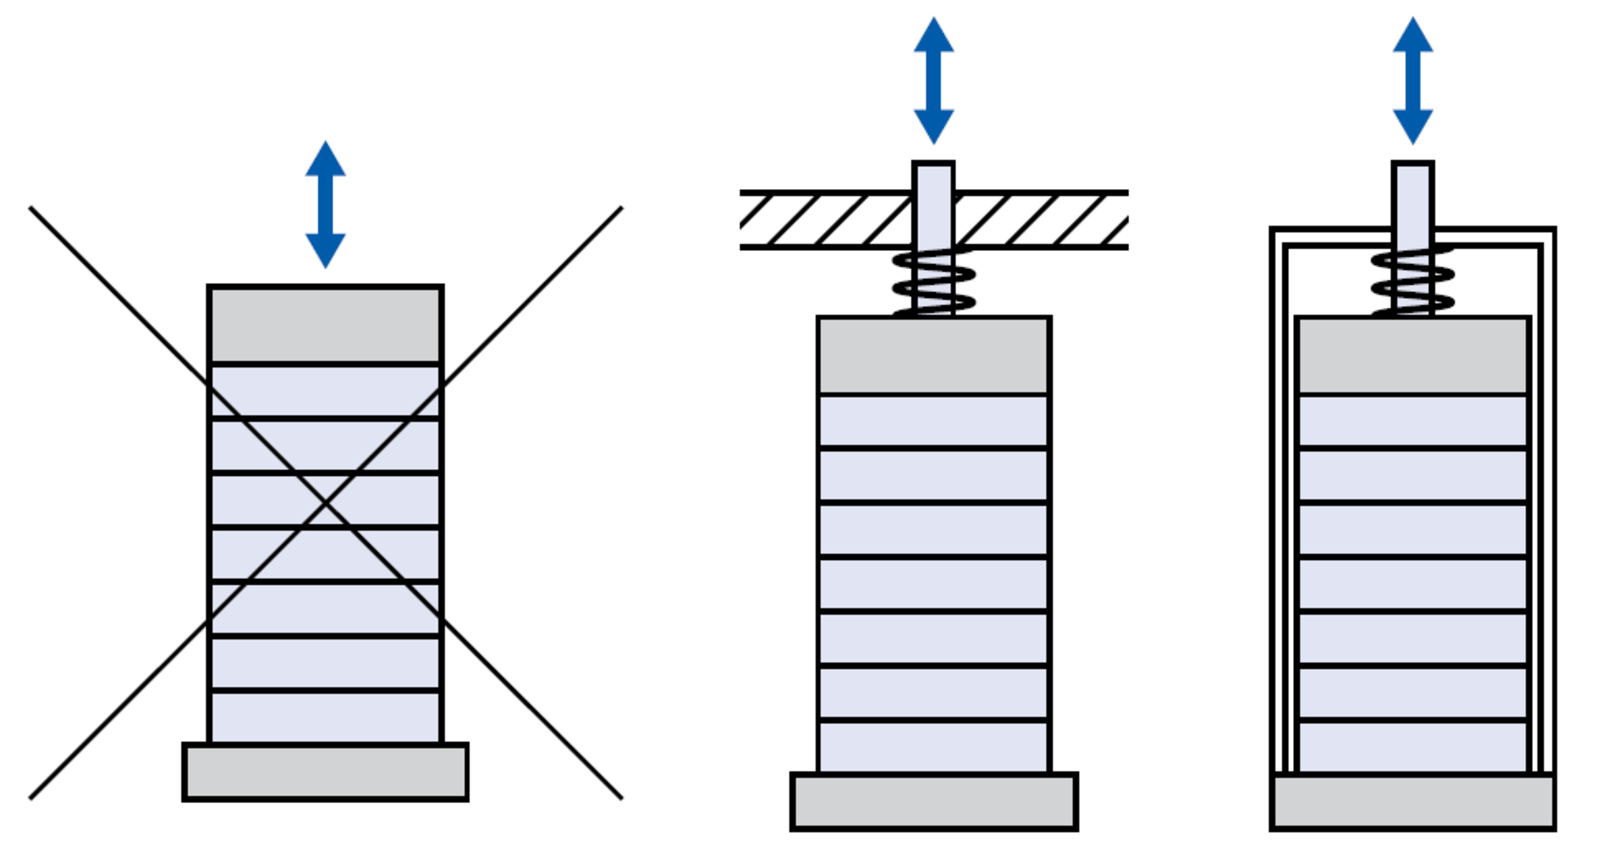 Forces and Stiffness